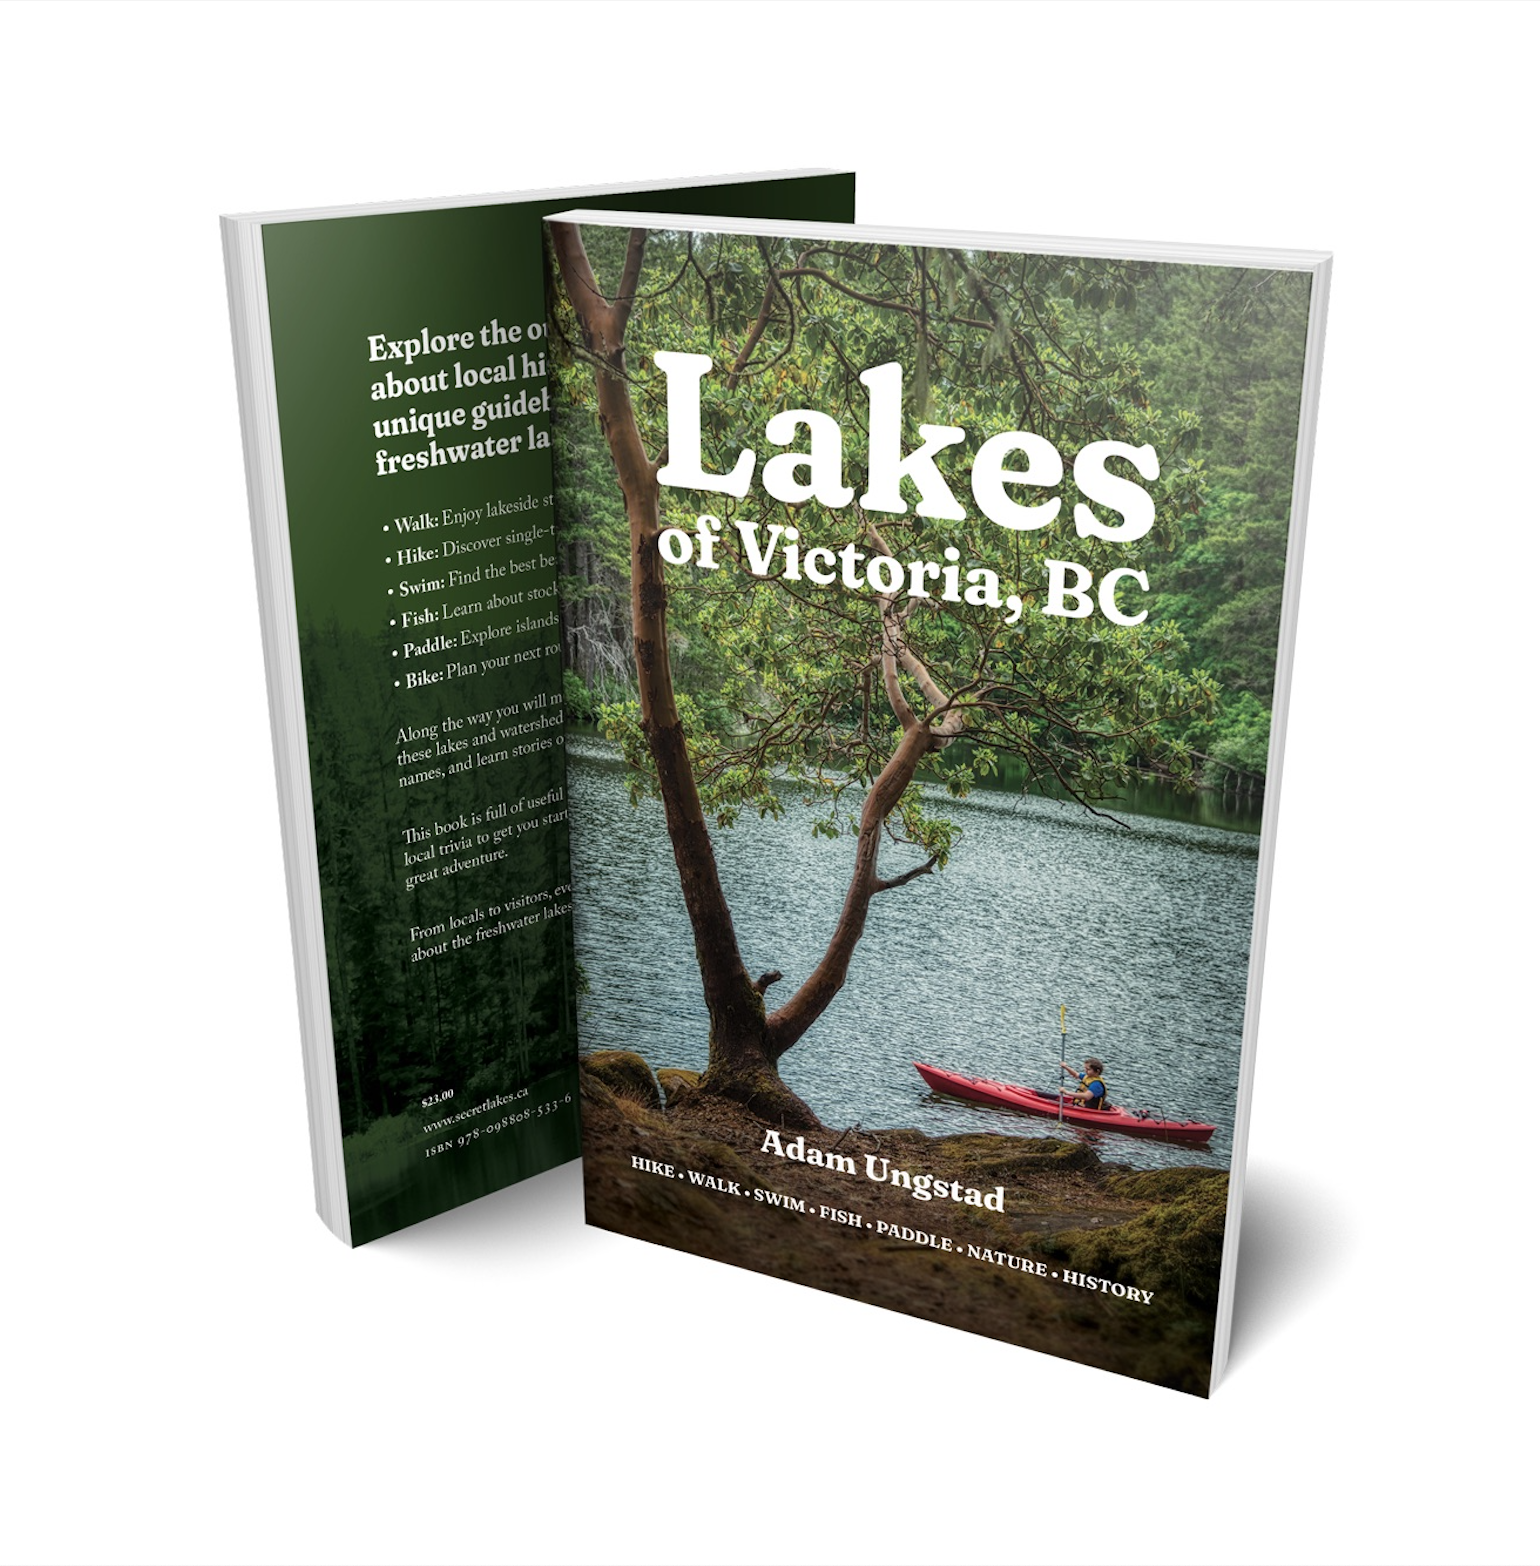 A mockup showing the front and back covers of the Lakes of Victoria, BC guidebook.